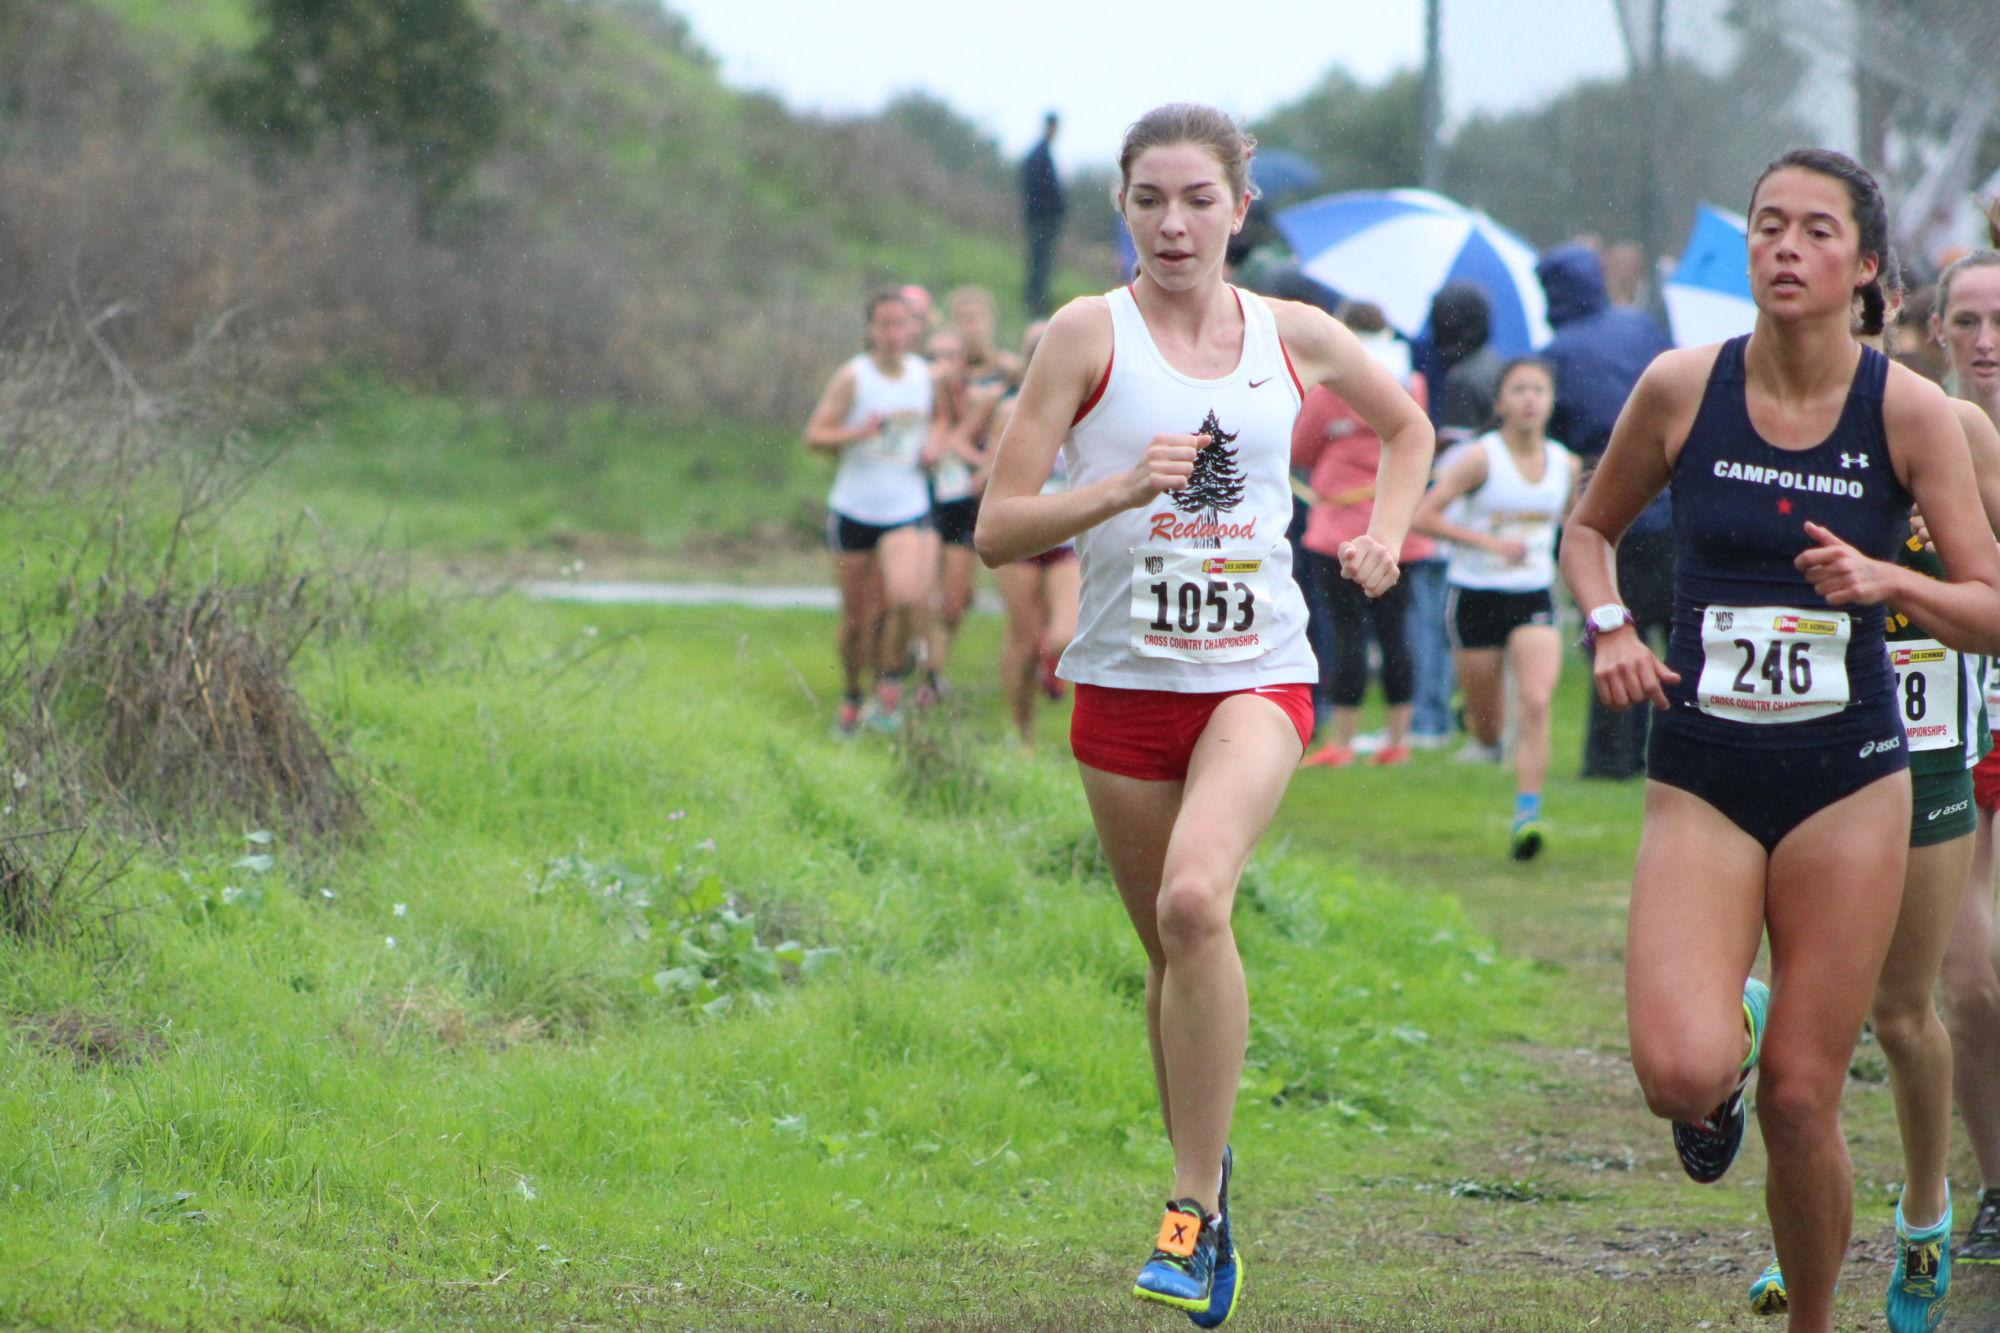 Girls' cross country to return to state meet after successful NCS showing